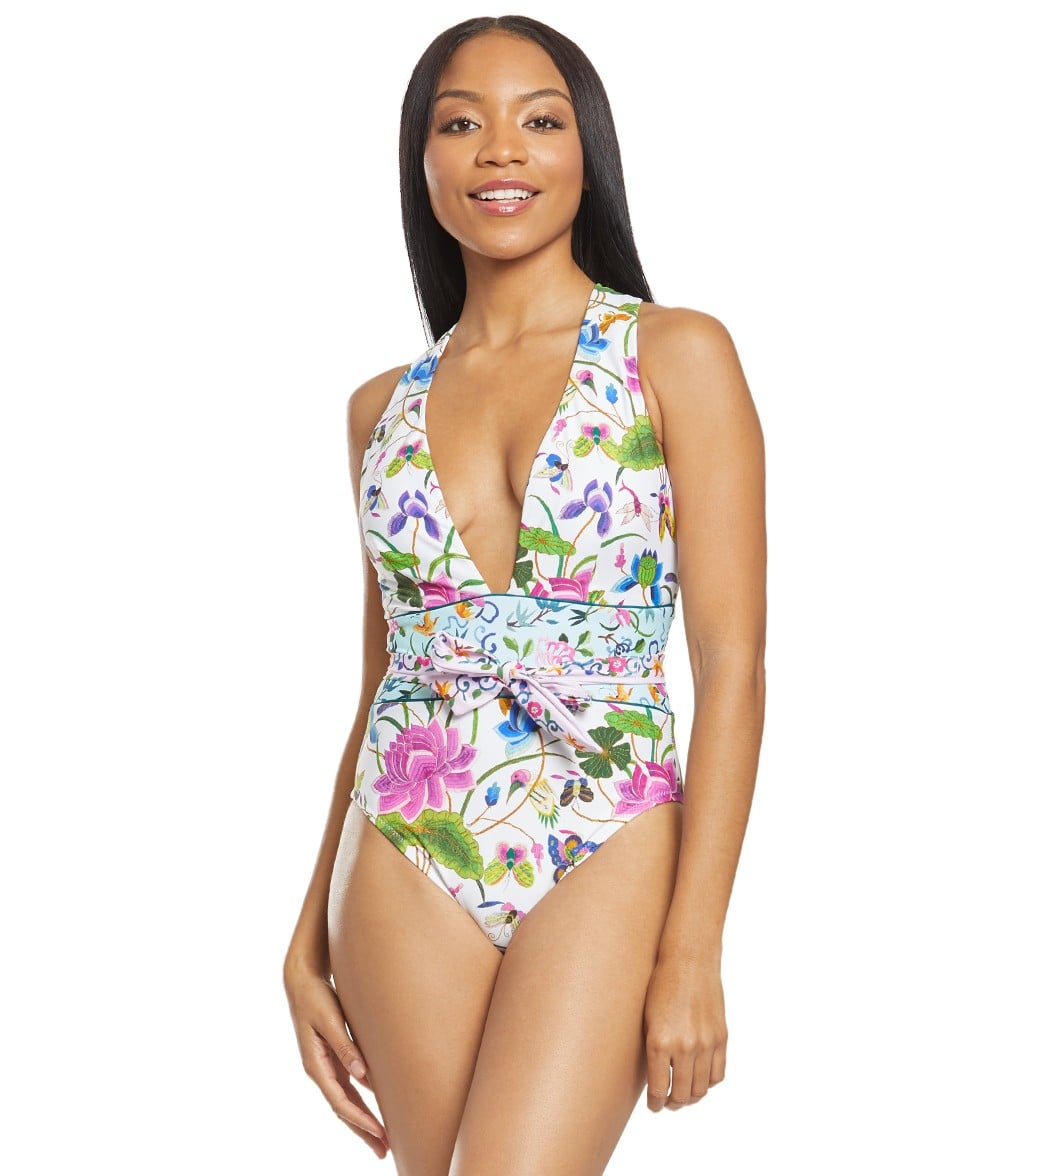 6a86effea8 Nanette Lepore Opulent Garden Belle Plunge One Piece Swimsuit at  SwimOutlet.com - Free Shipping